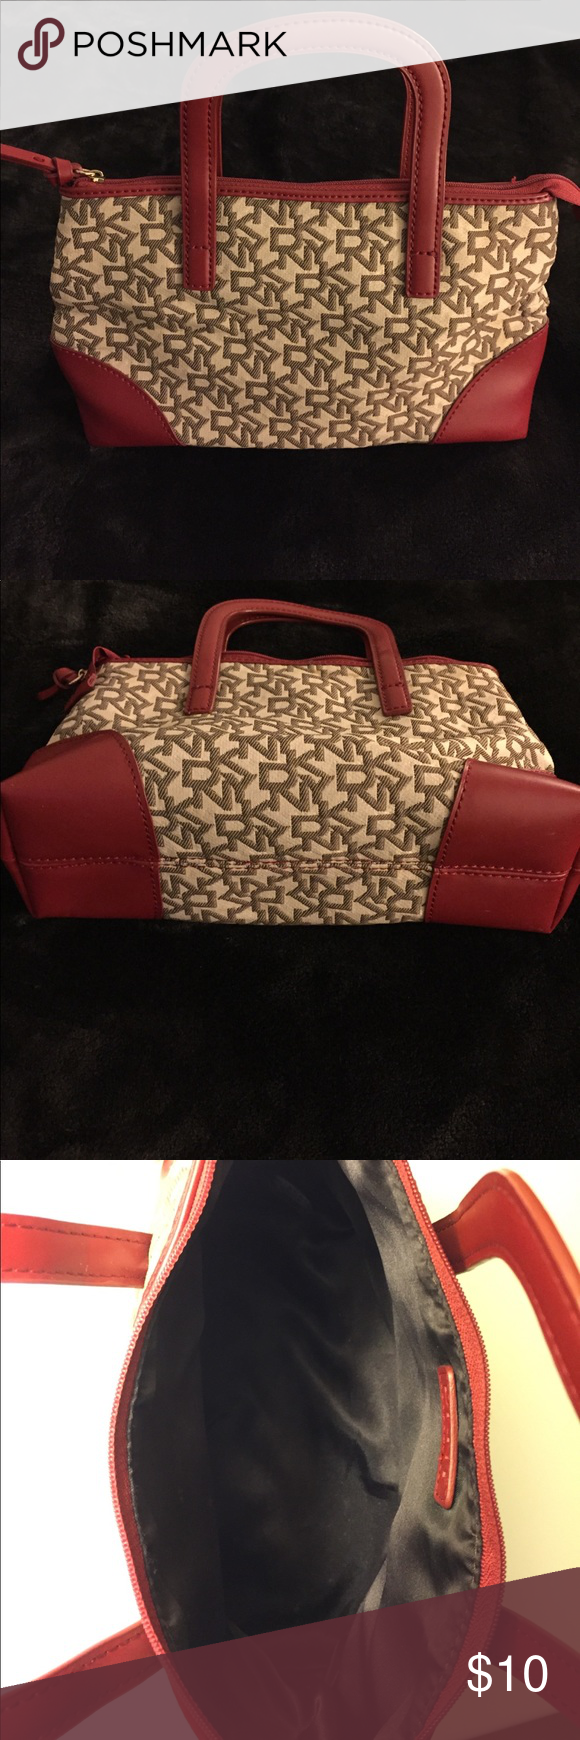 "DKNY Mini Purse/Cosmetic Bag Excellent condition!! Small enough for a night out, or could be used as a cosmetic bag.  Approx. 10.5"" Wide and 6"" in Length. DKNY Bags Mini Bags"